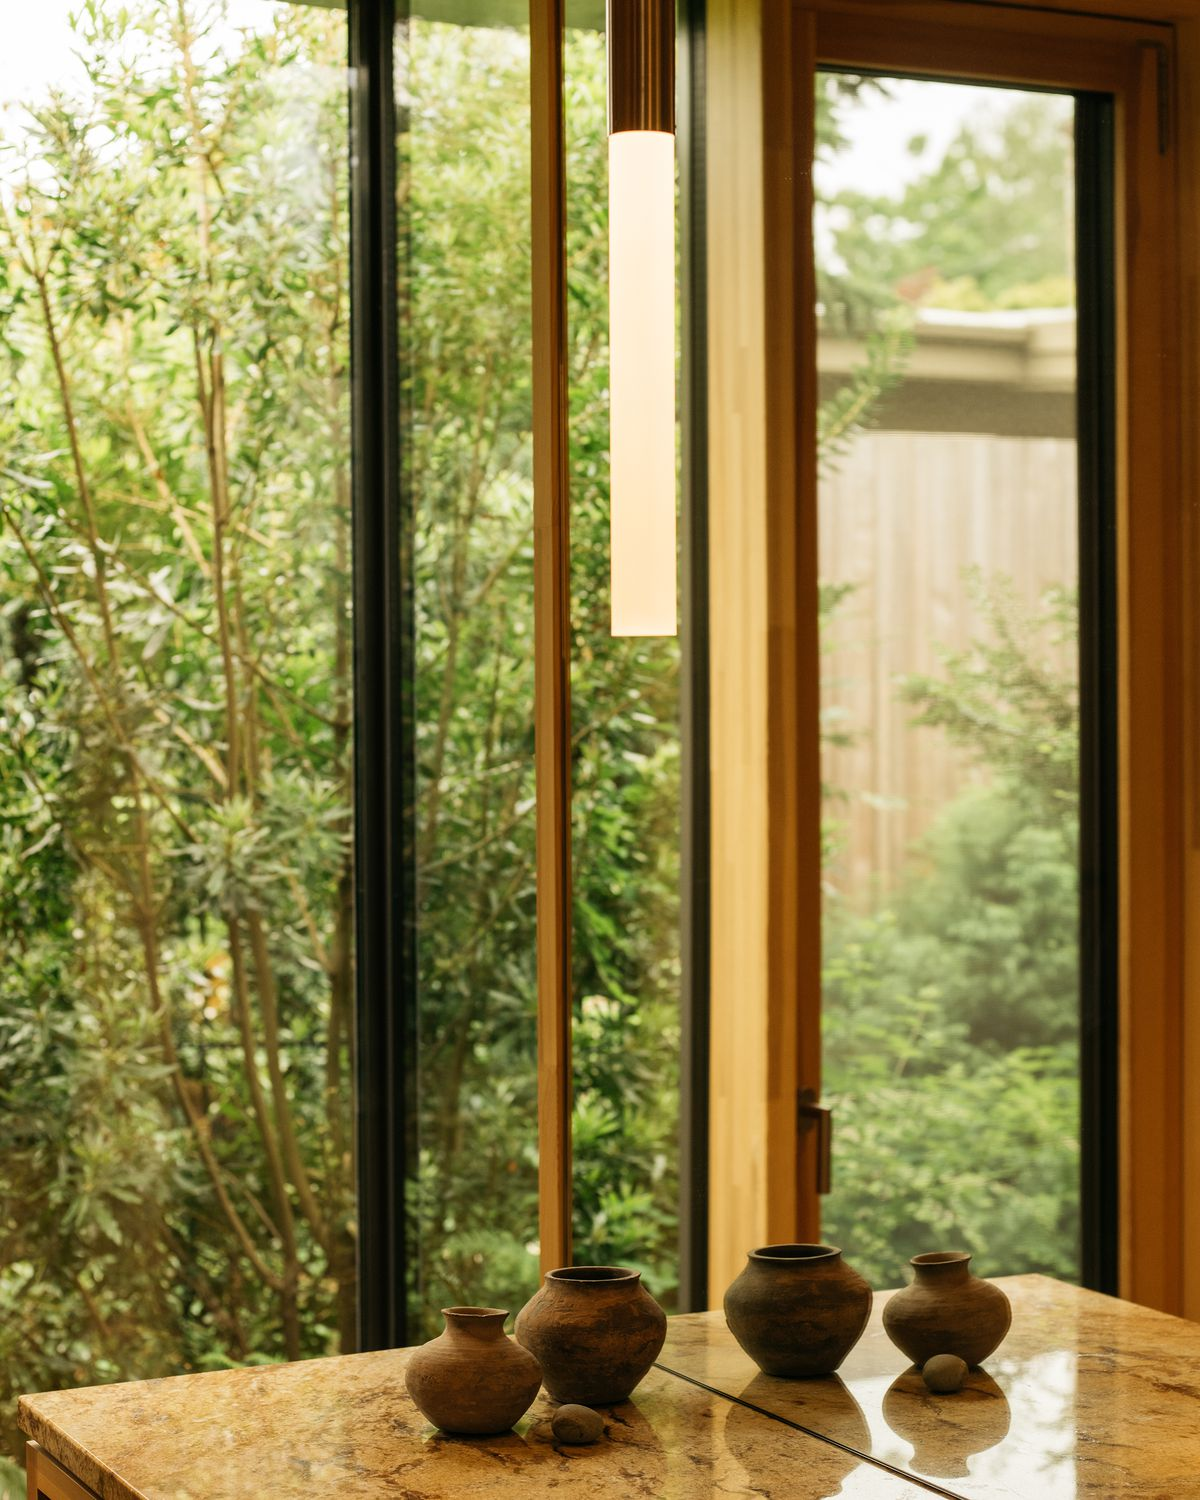 A desk with several clay objects.  Behind the desk is a floor-to-ceiling window with a view of lush trees and plants.